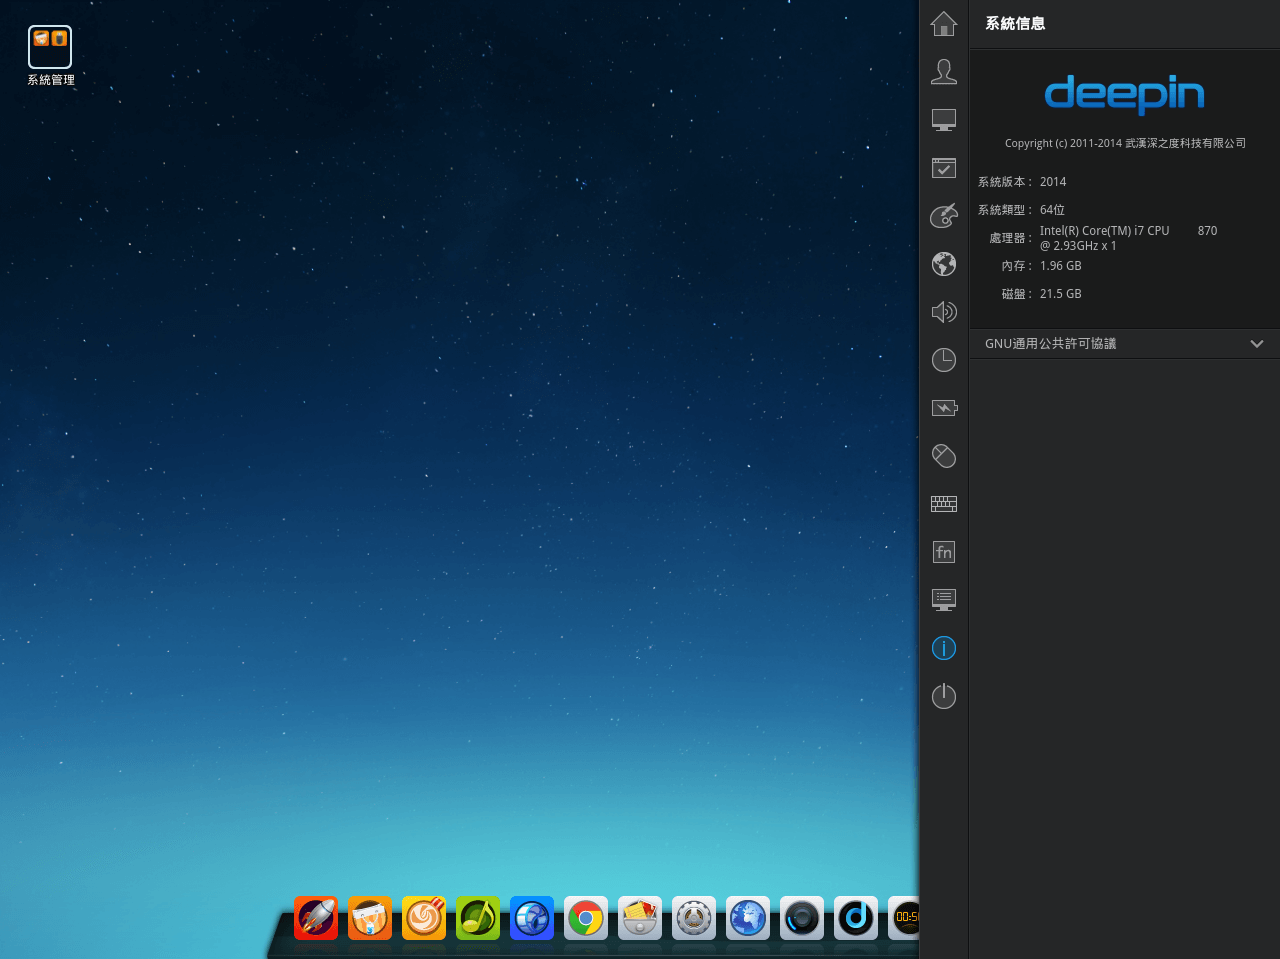 deepin_install_screenshot 24